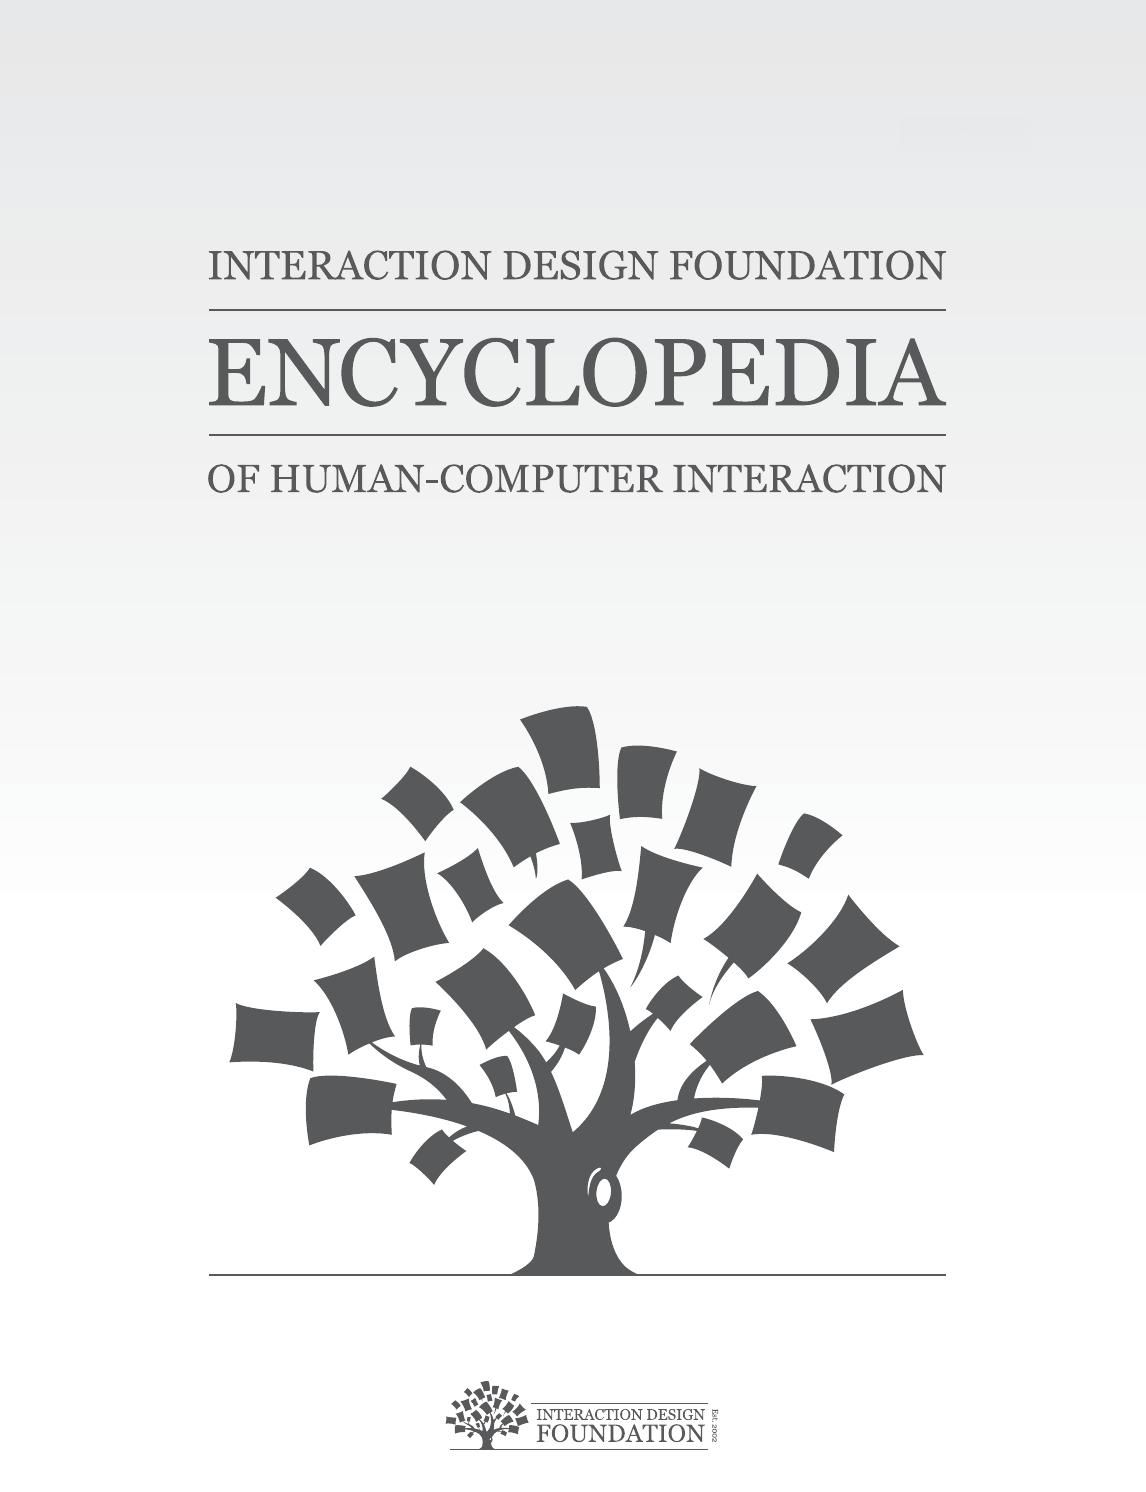 The Encyclopedia of Human-Computer Interaction, 2nd Ed. Authors: Mads Soegaard and Rikke Friis Dam Publisher: #TheInteractionDesignFoundation (Read the entire online) #HighlyRecommendedReading #DesigningInteractions